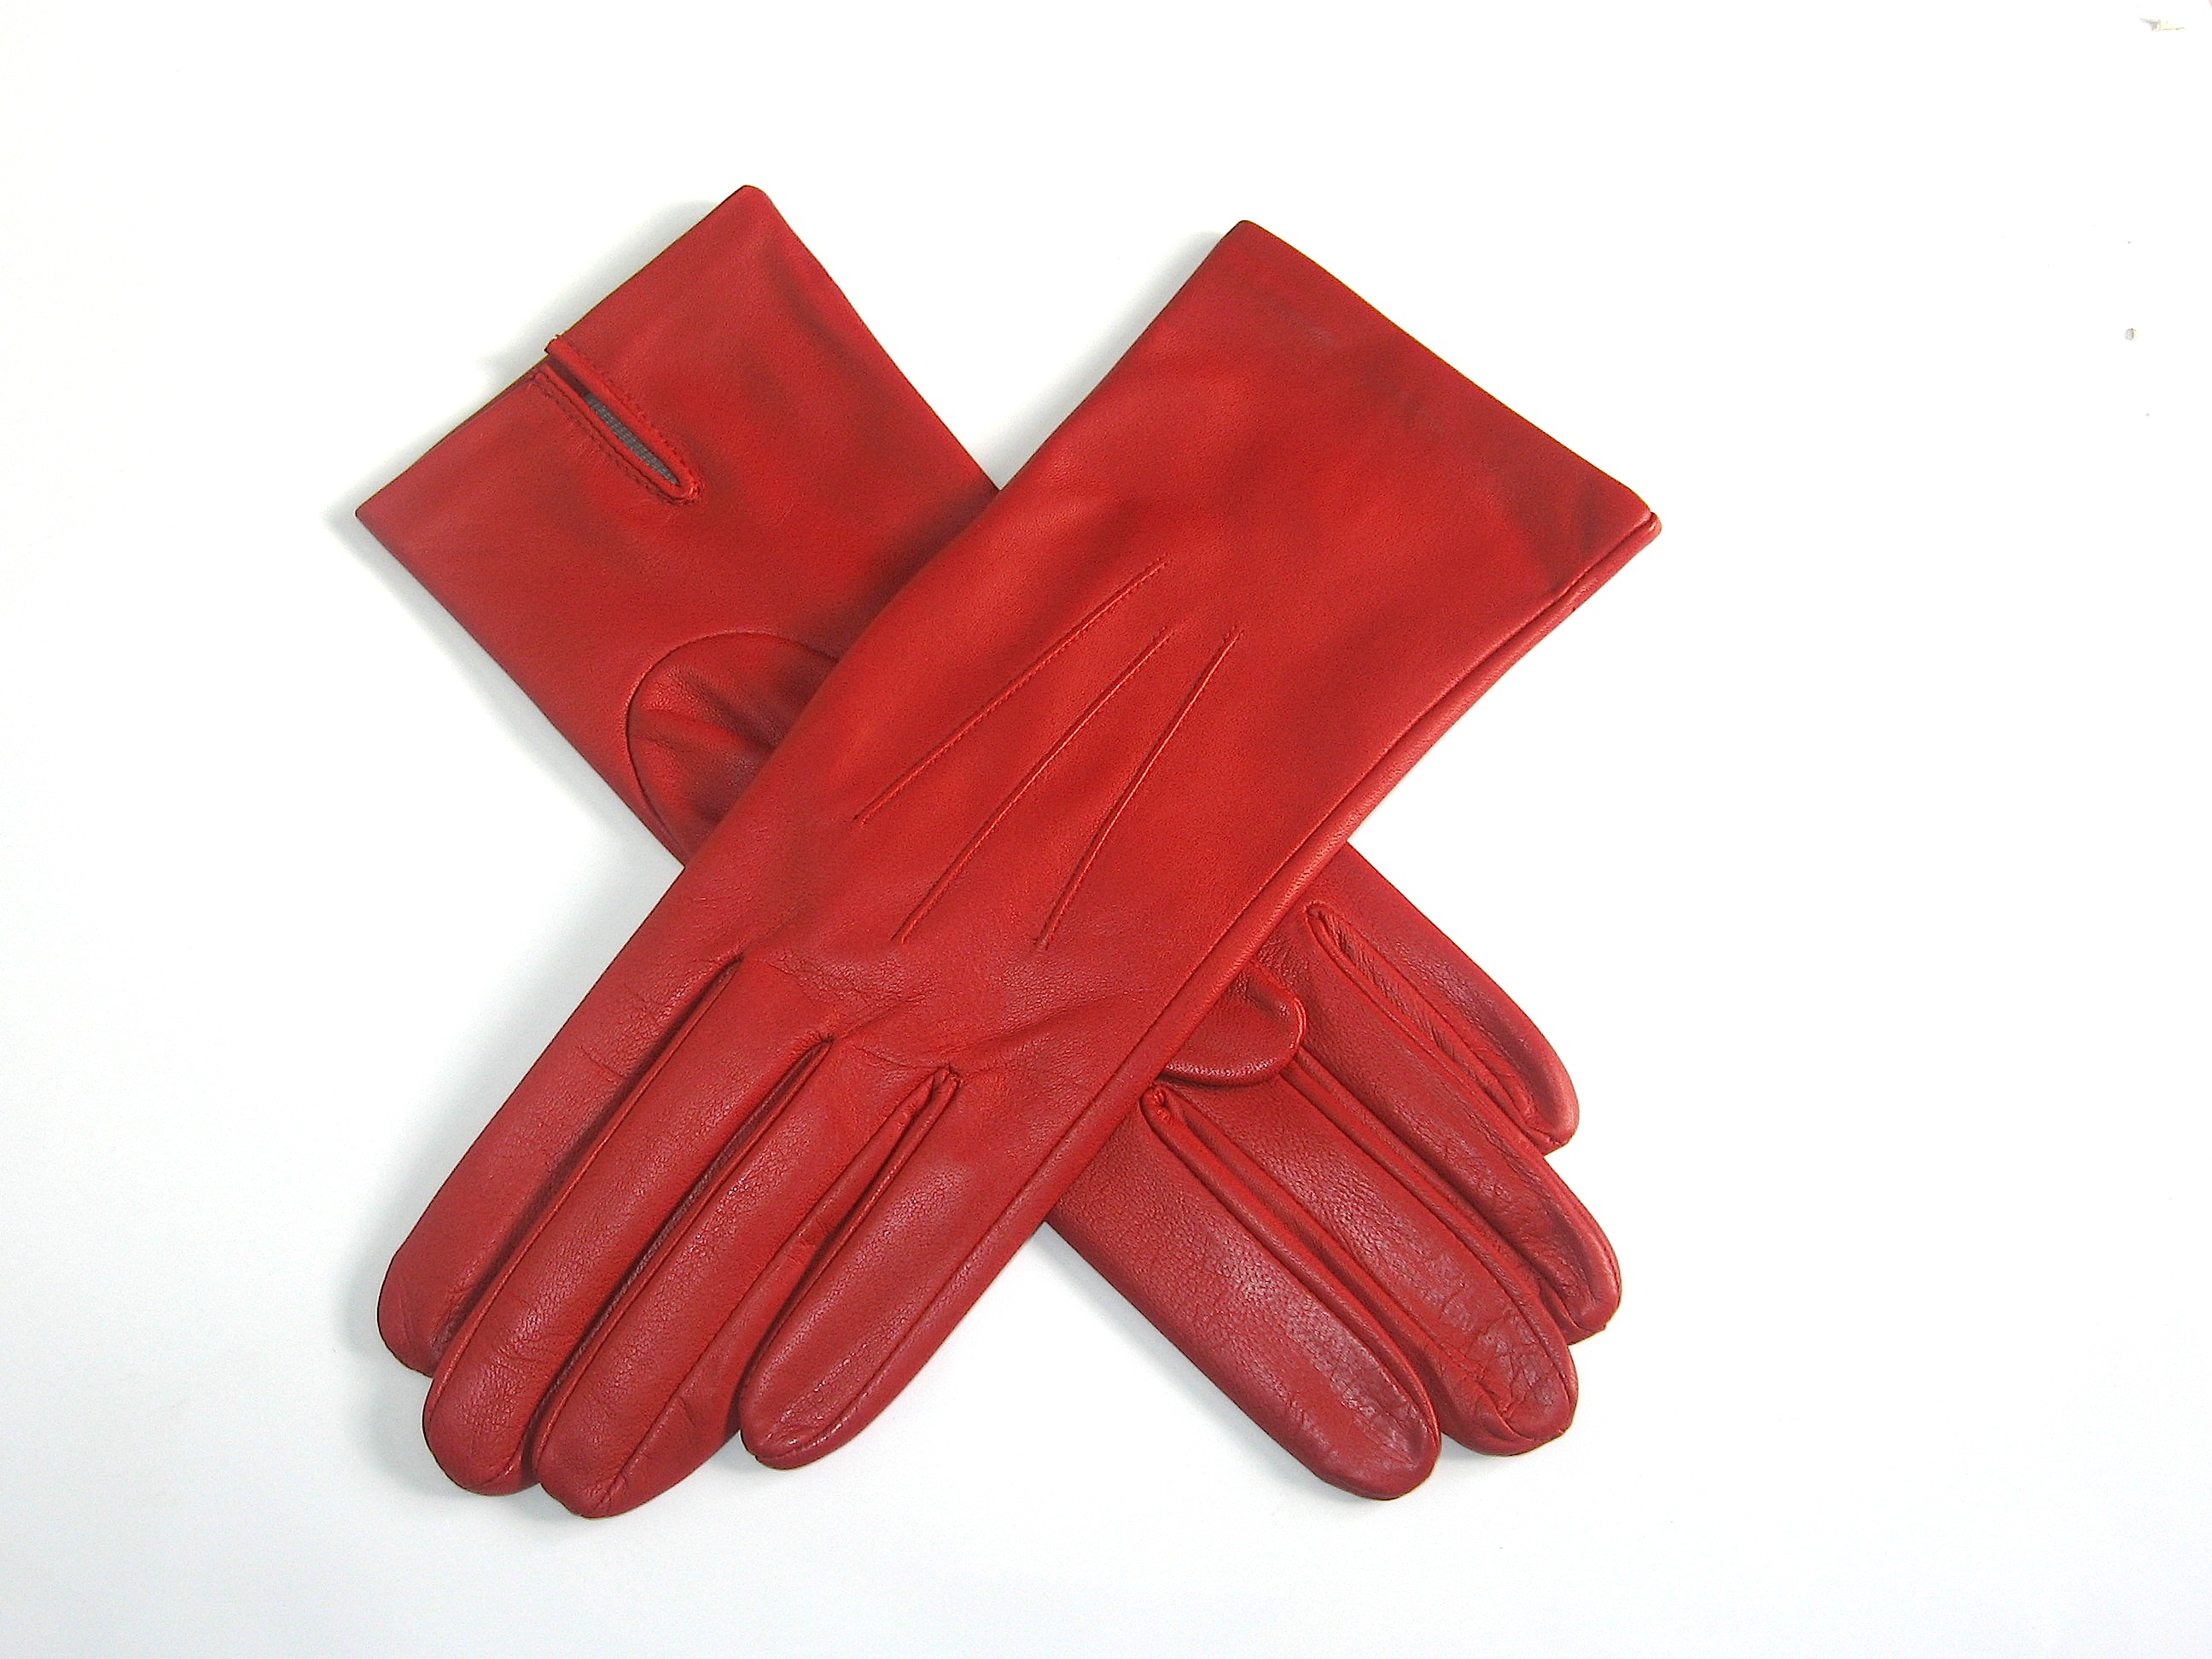 Pittards ladies leather gloves - Classic Leather Gloves In Berry Made From The Beautiful Pittards Extrasoft 3000 Leather Featuring 3 Point Stitching On The Back And A Palm Vent